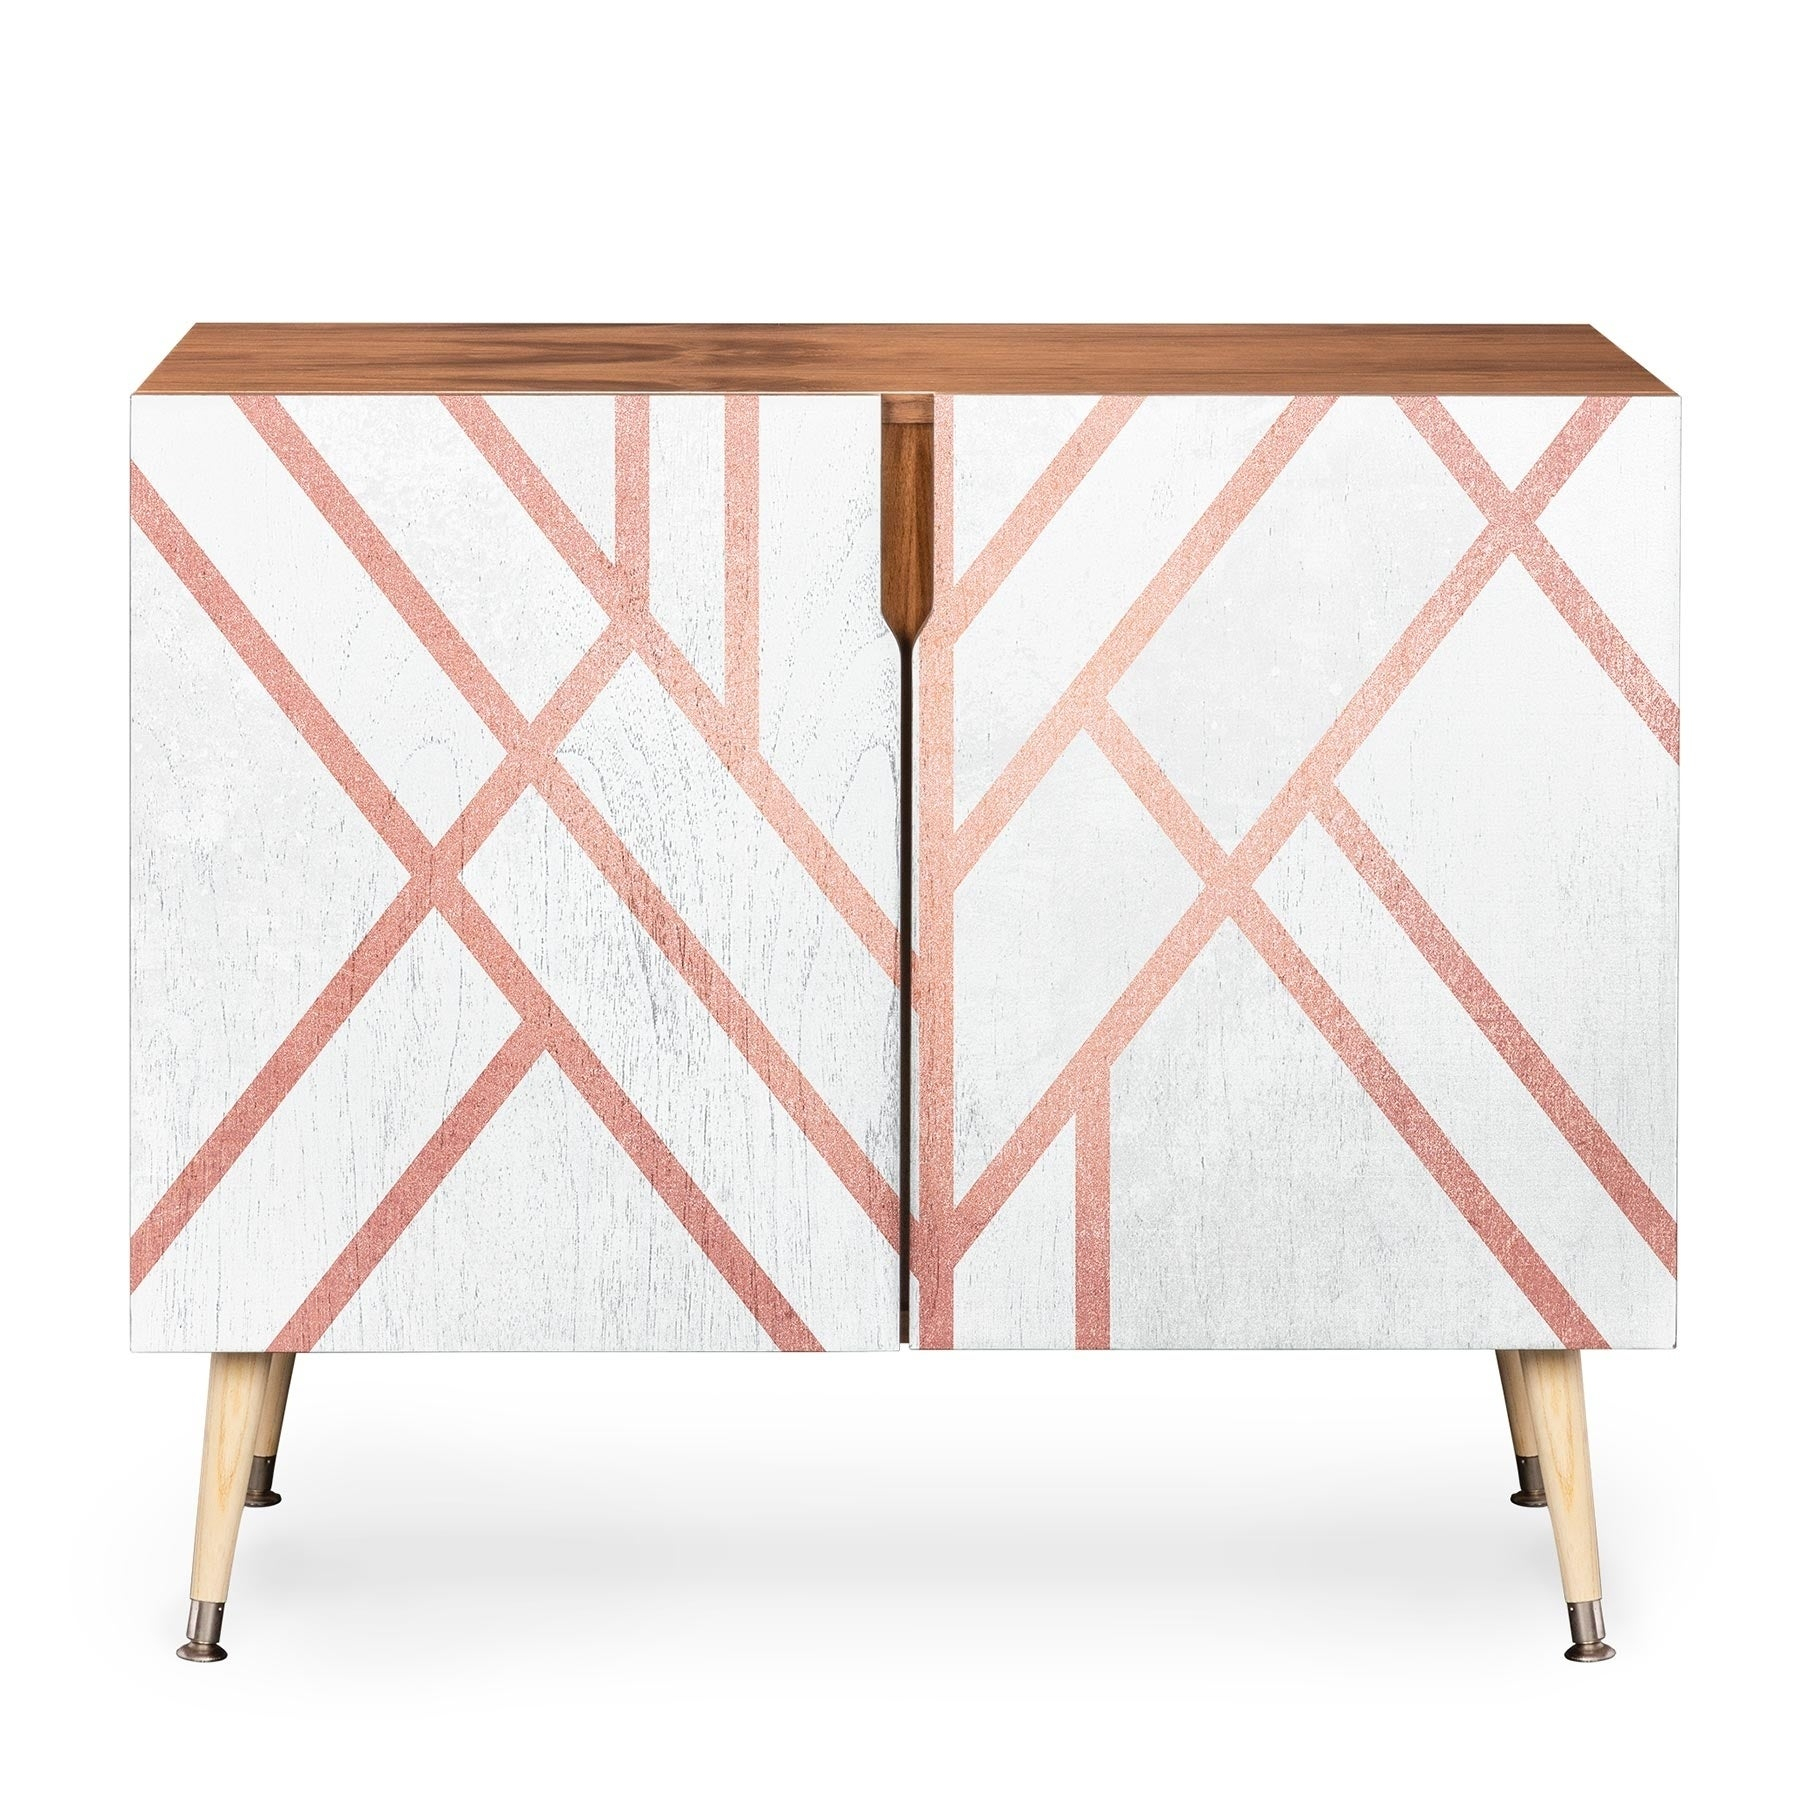 Deny Designs Pink And White Geometric Credenza (Birch Or Walnut, 3 Leg Options) With Modele 7 Geometric Credenzas (Gallery 25 of 30)